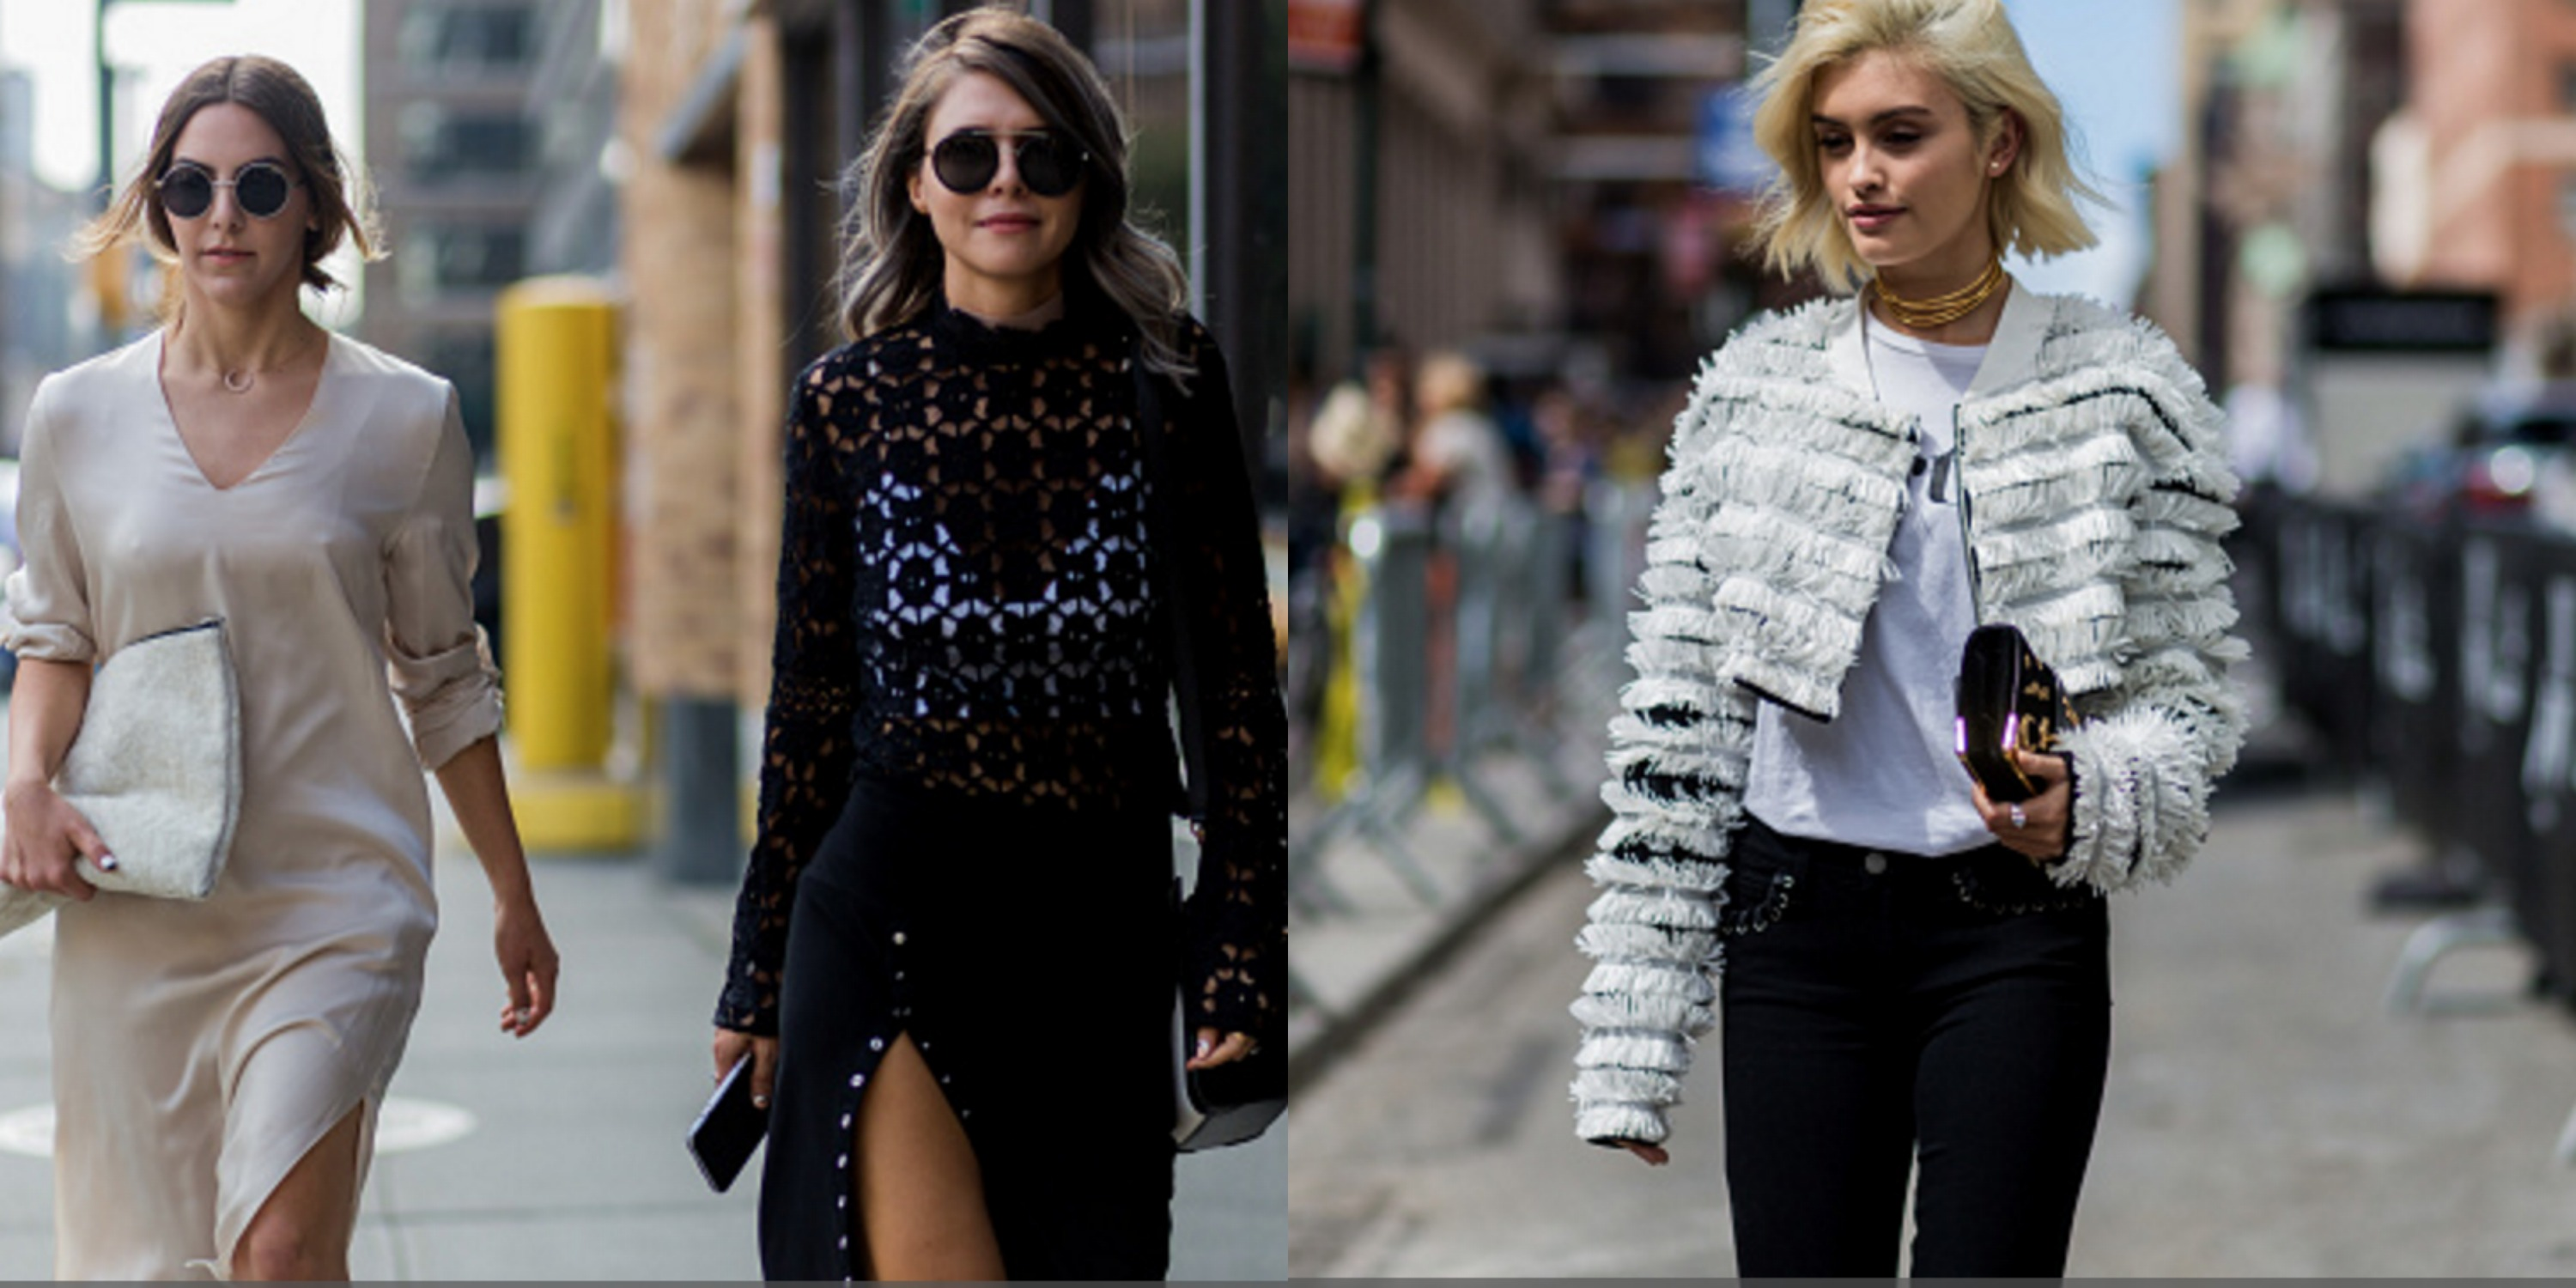 Style Meets the Streets at NYFW